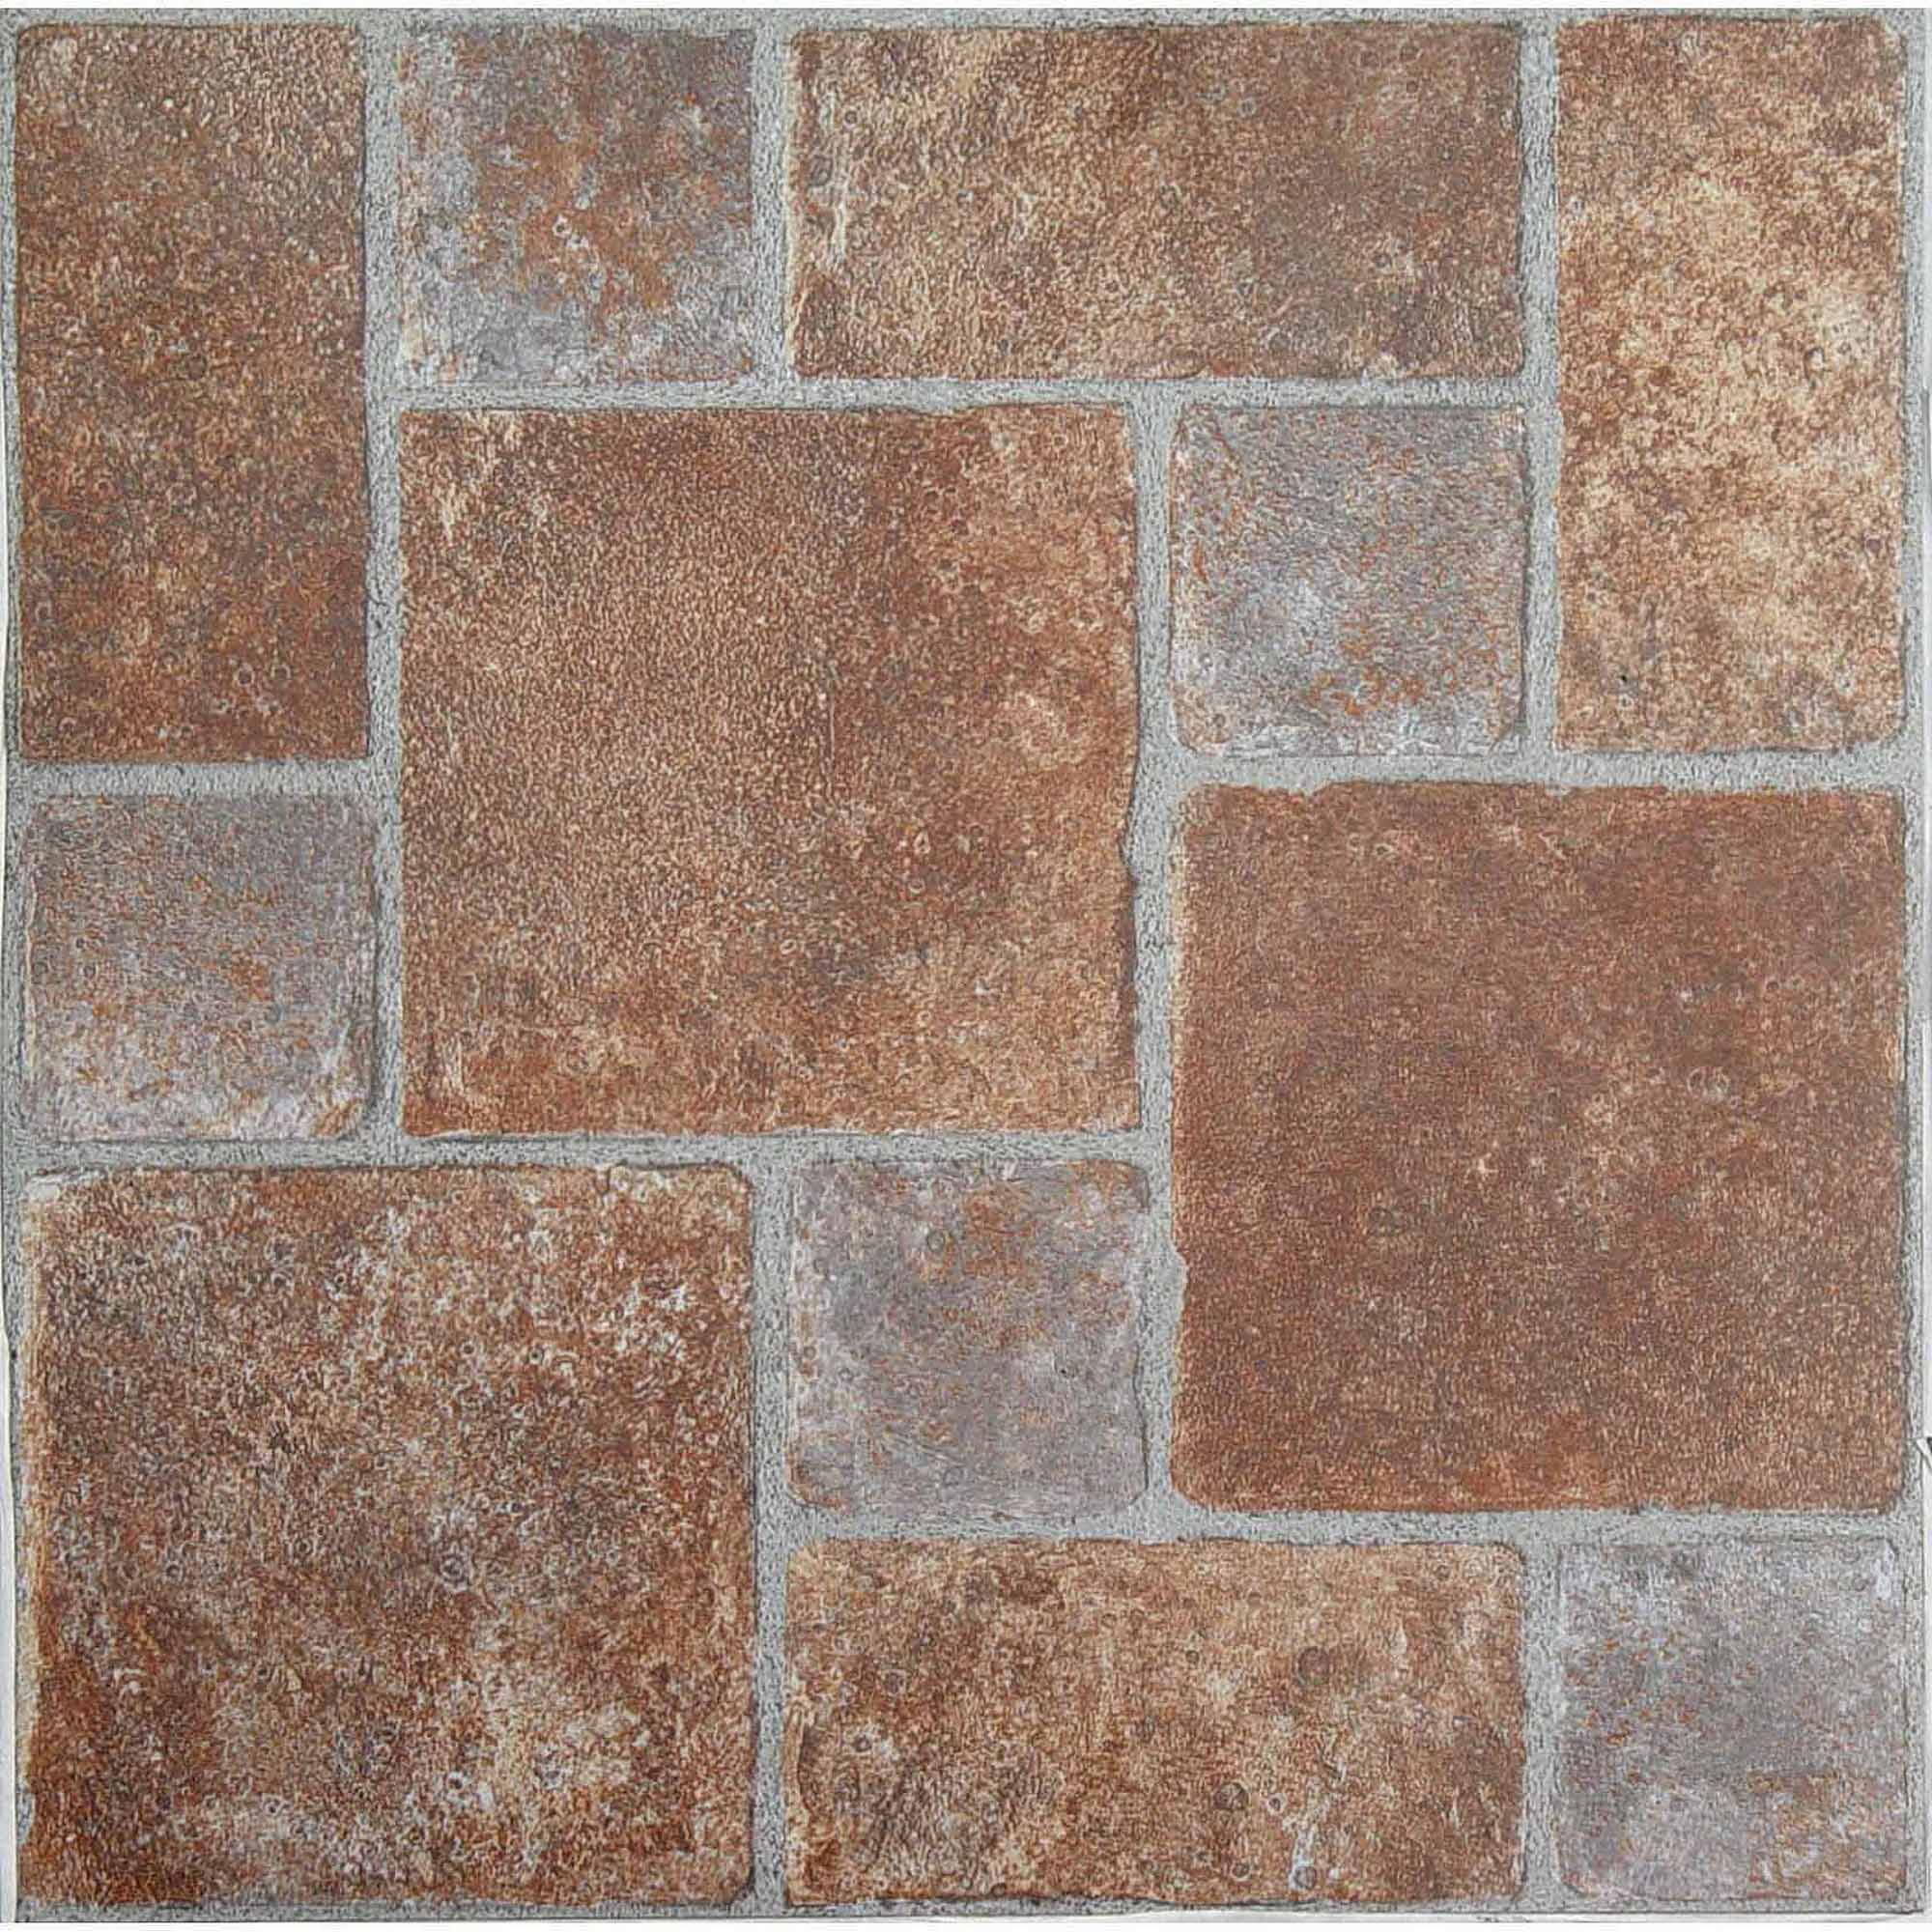 Nexus brick pavers 12x12 self adhesive vinyl floor tile 20 tiles nexus brick pavers 12x12 self adhesive vinyl floor tile 20 tiles20 sqft walmart dailygadgetfo Image collections